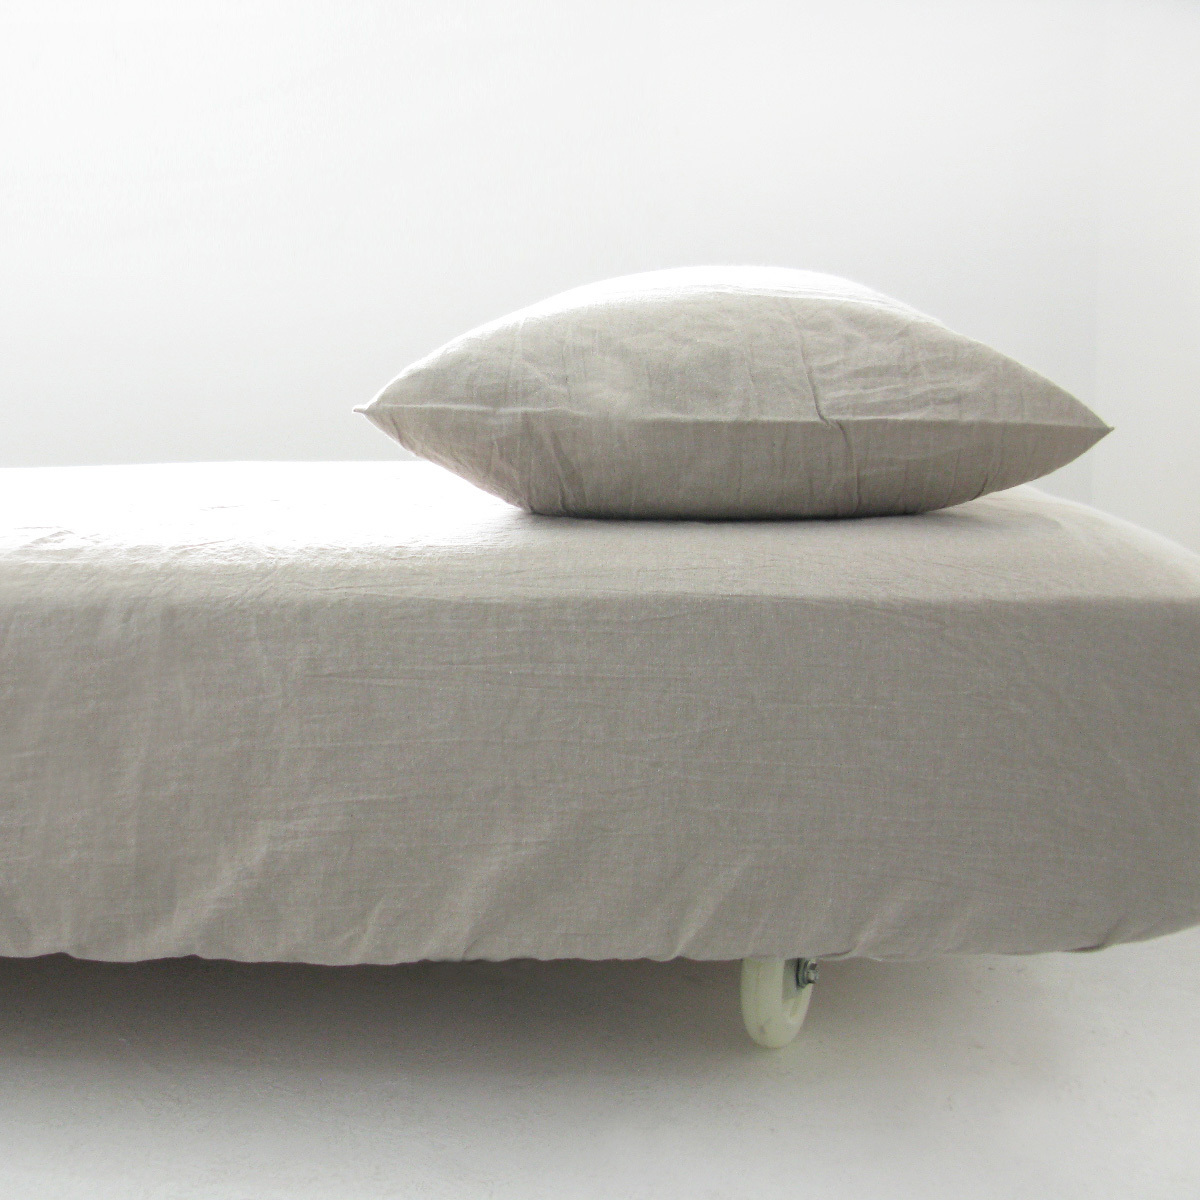 Muji Bed Sheets Taobao Seller Danny595